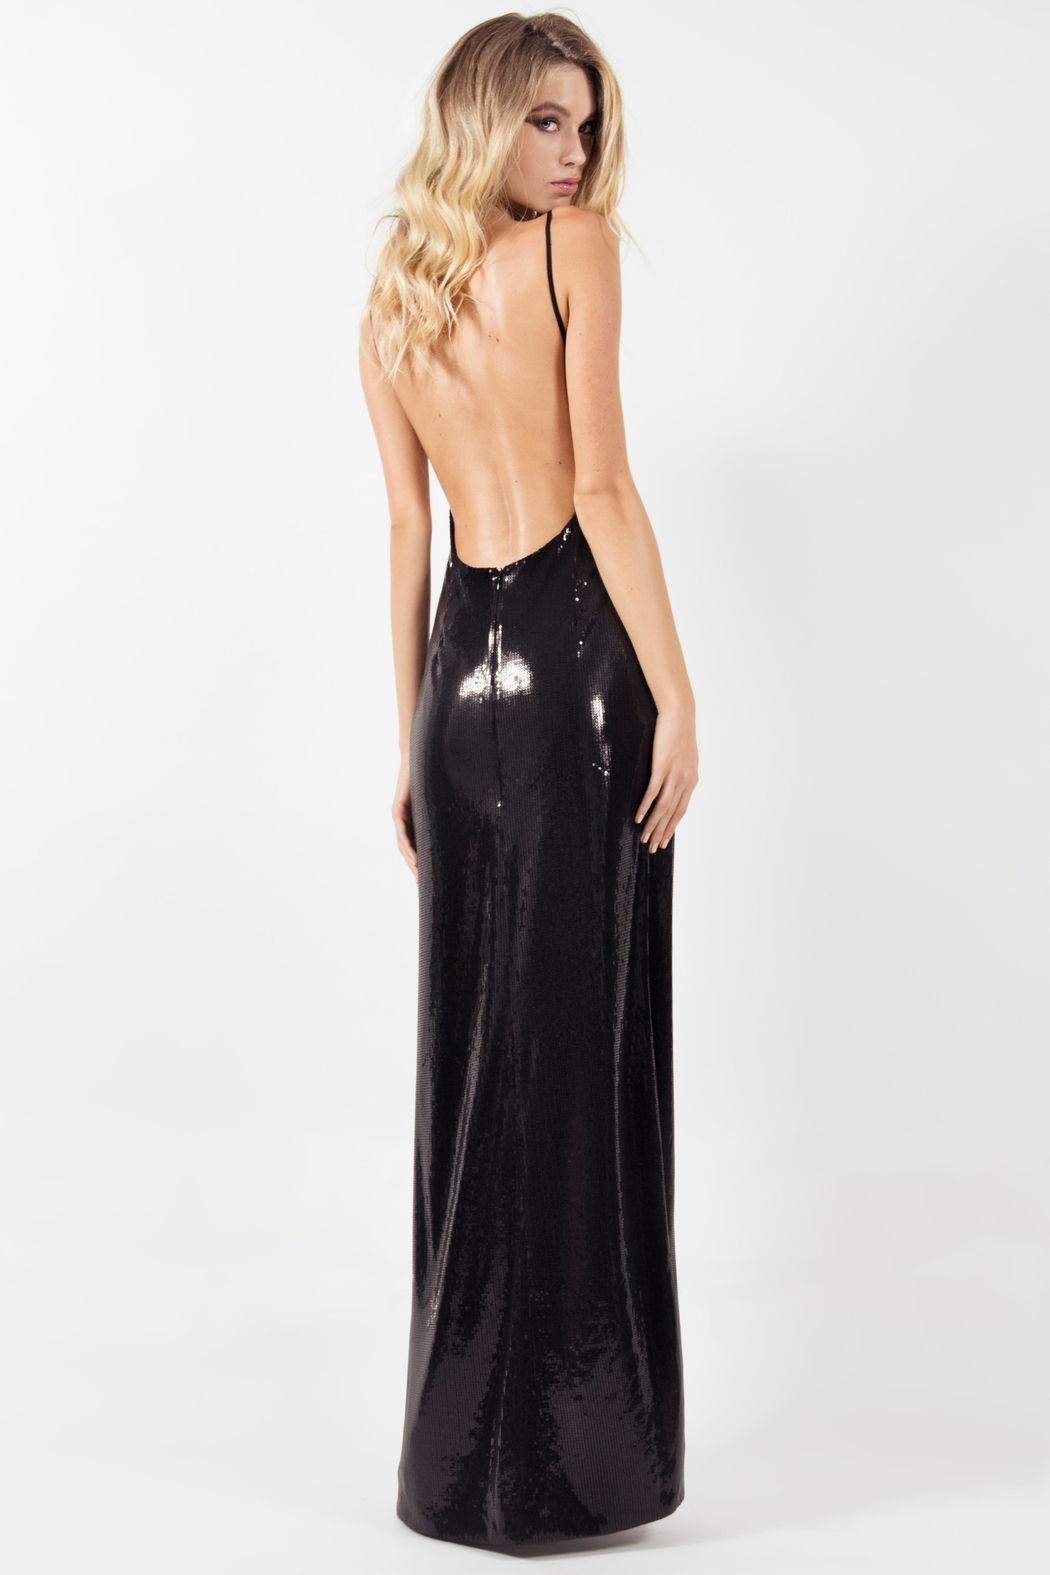 Viesca y Viesca Low Back Maxi Dress - Side Cropped Image